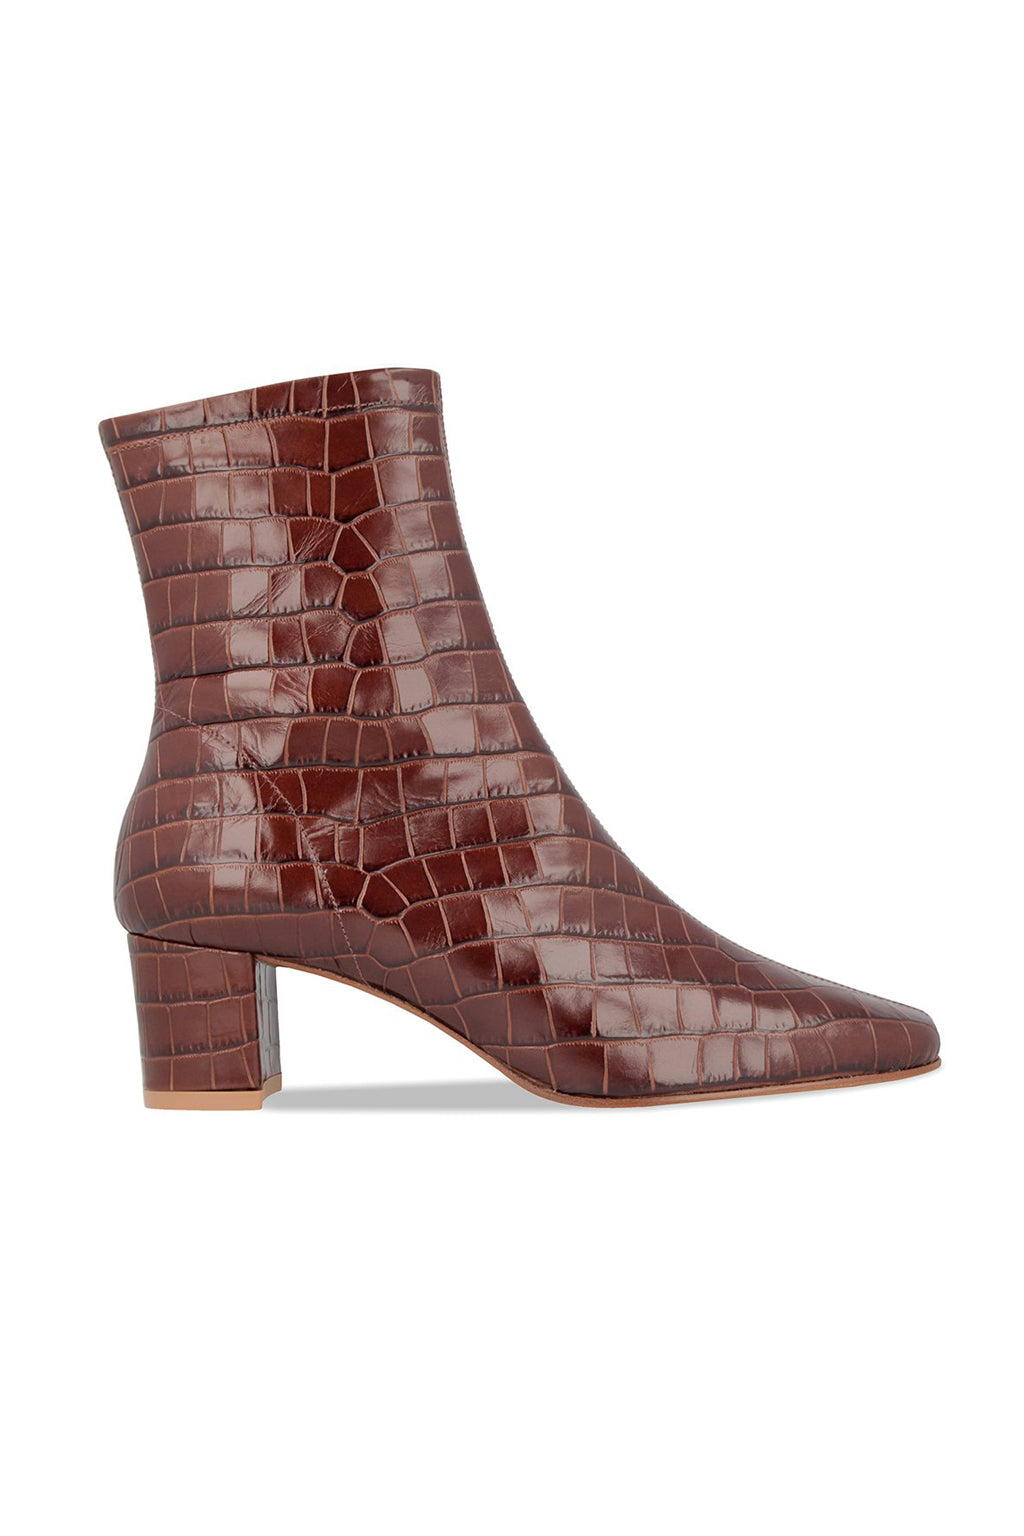 0e546e180e0 BY FAR Sofia Boots Nutella Croco Embossed Leather